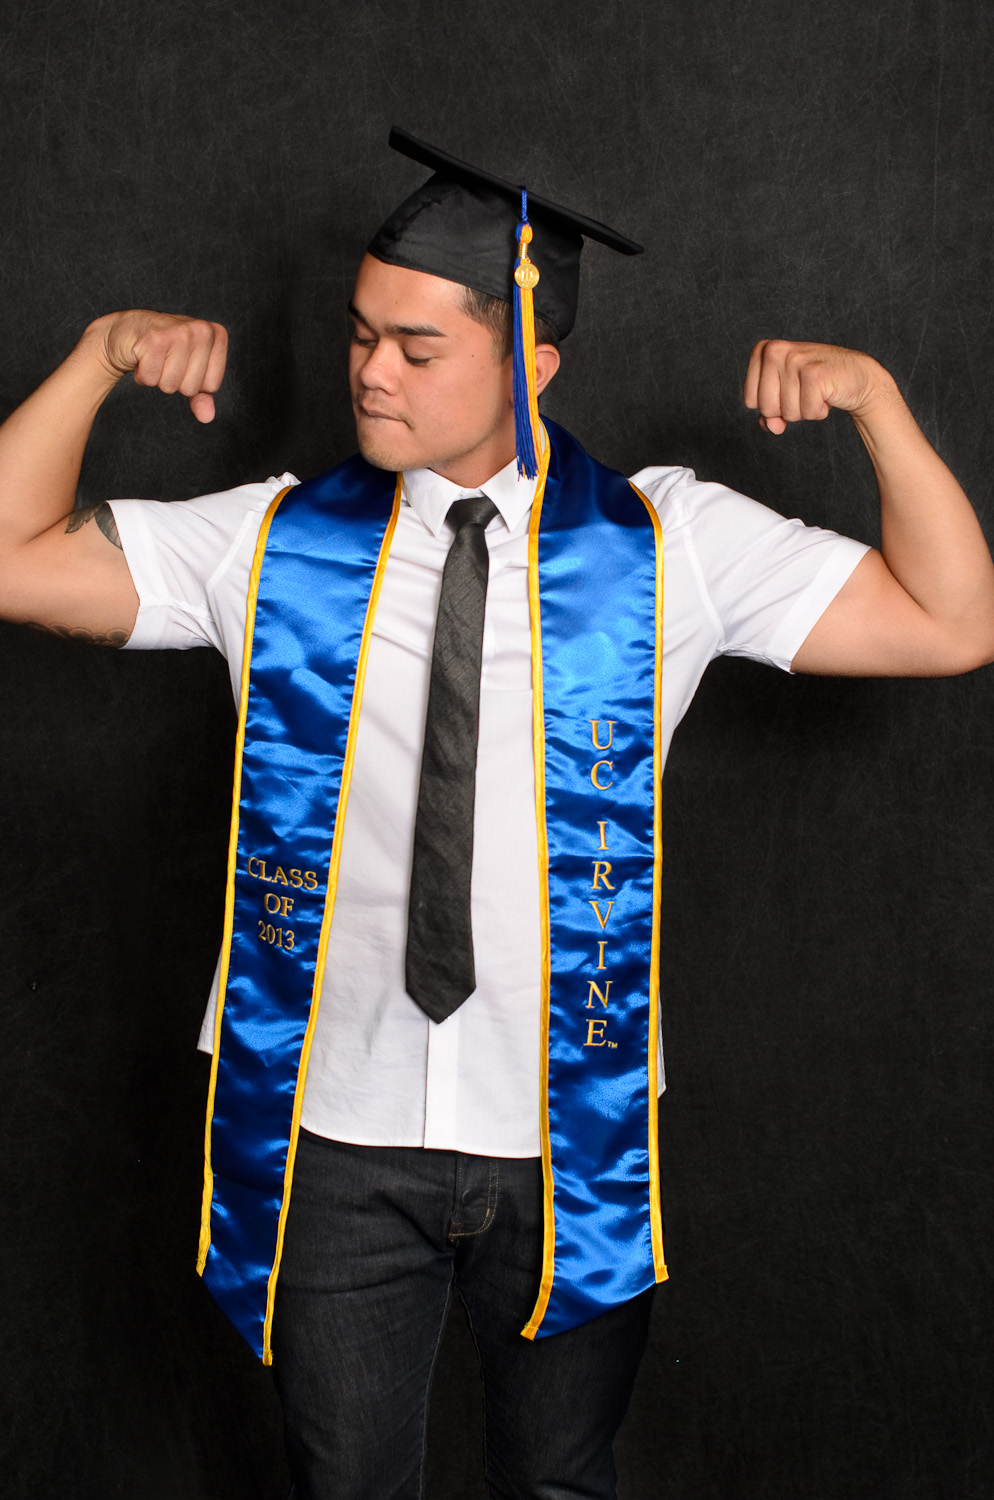 Bryan-Miraflor-Photography-Grad-Portraits-Ryan-James-20130530-0011.jpg